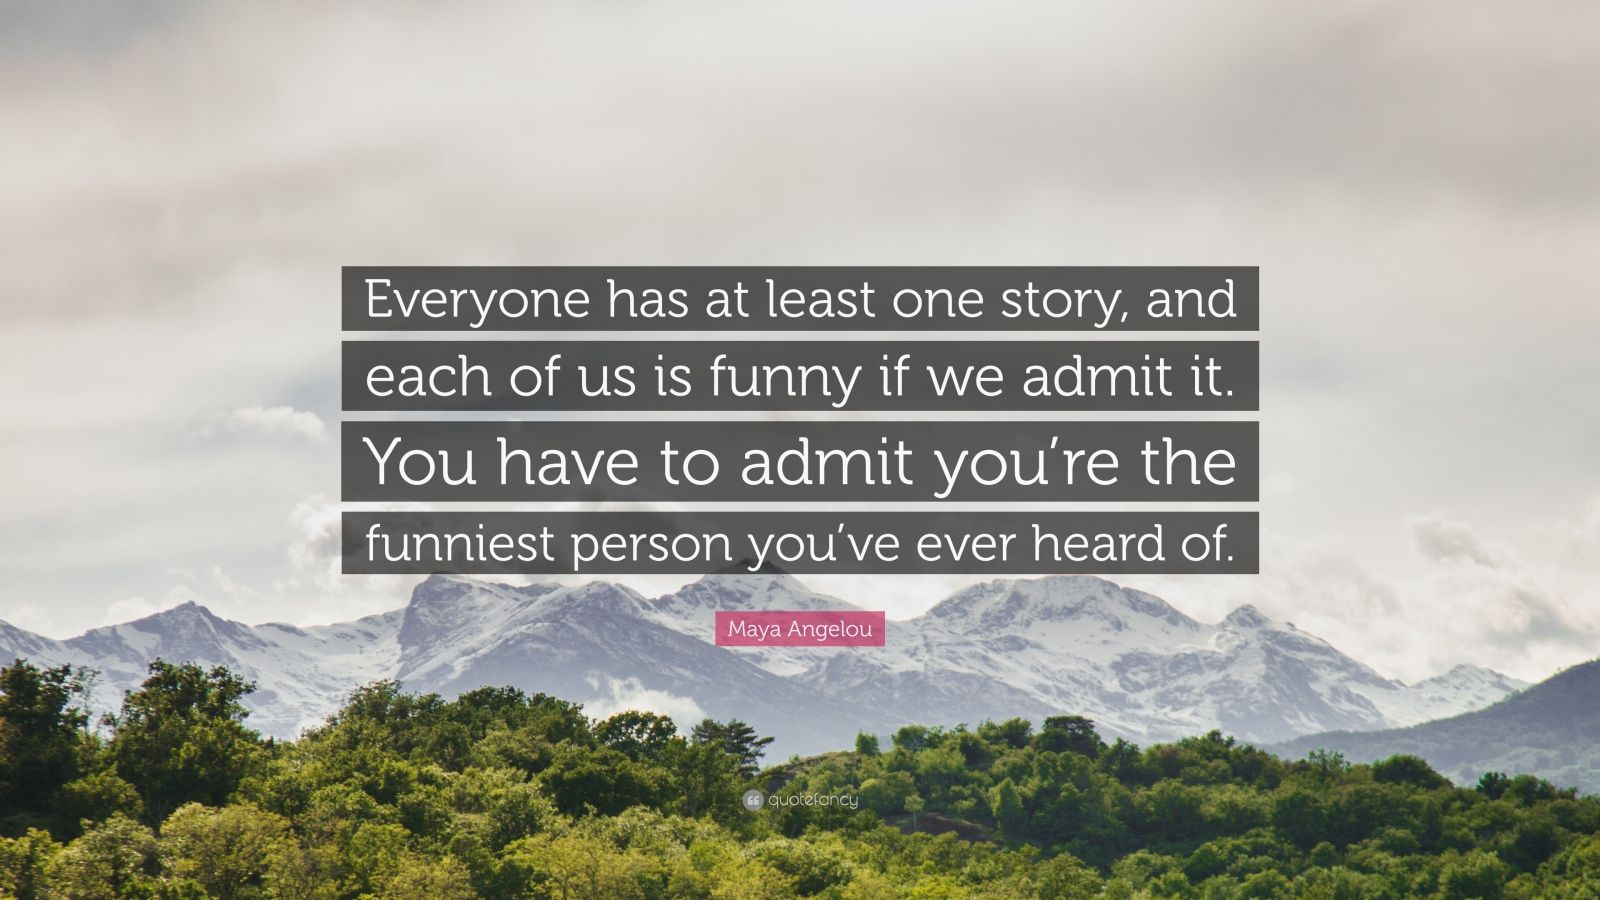 """Maya Angelou Quote: """"Everyone has at least one story, and each of us is funny if we admit it. You have to admit you're the funniest person you've ever heard of."""""""